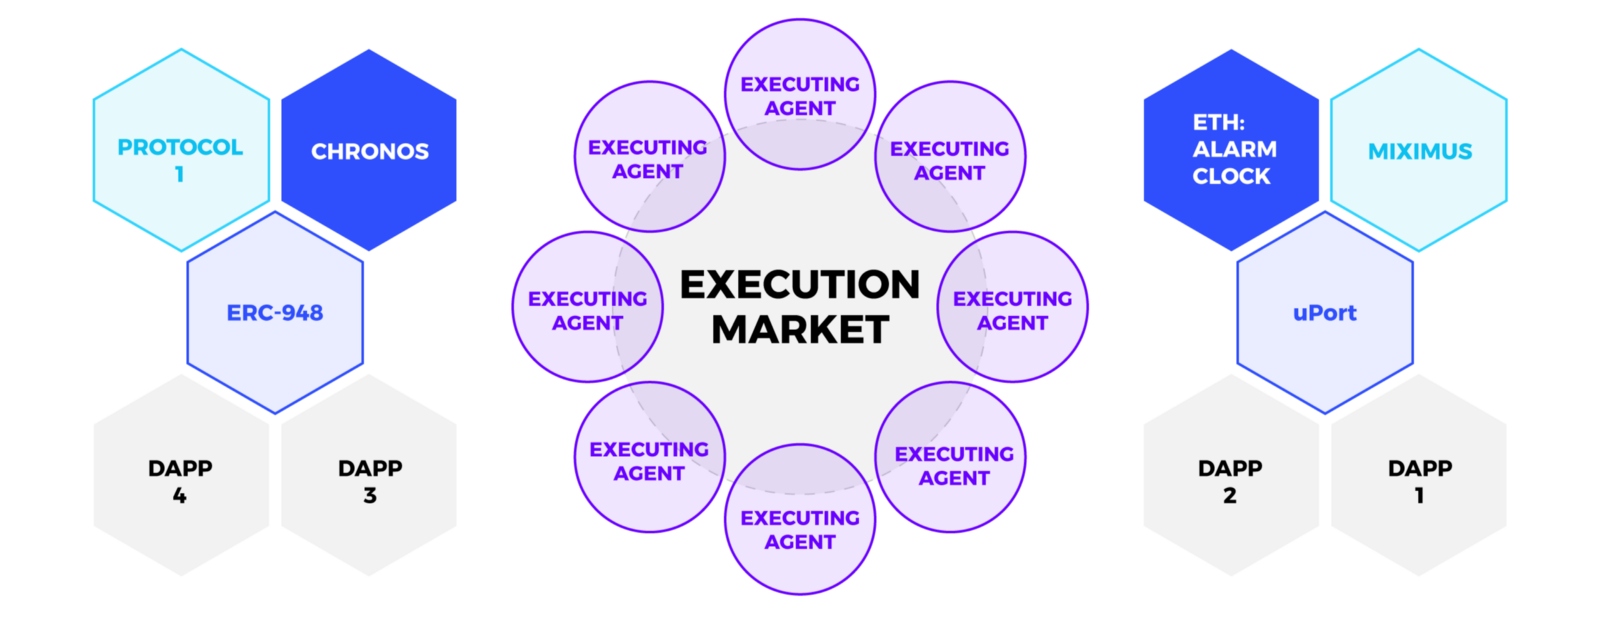 Execution markets — automate protocols and earn crypto - By